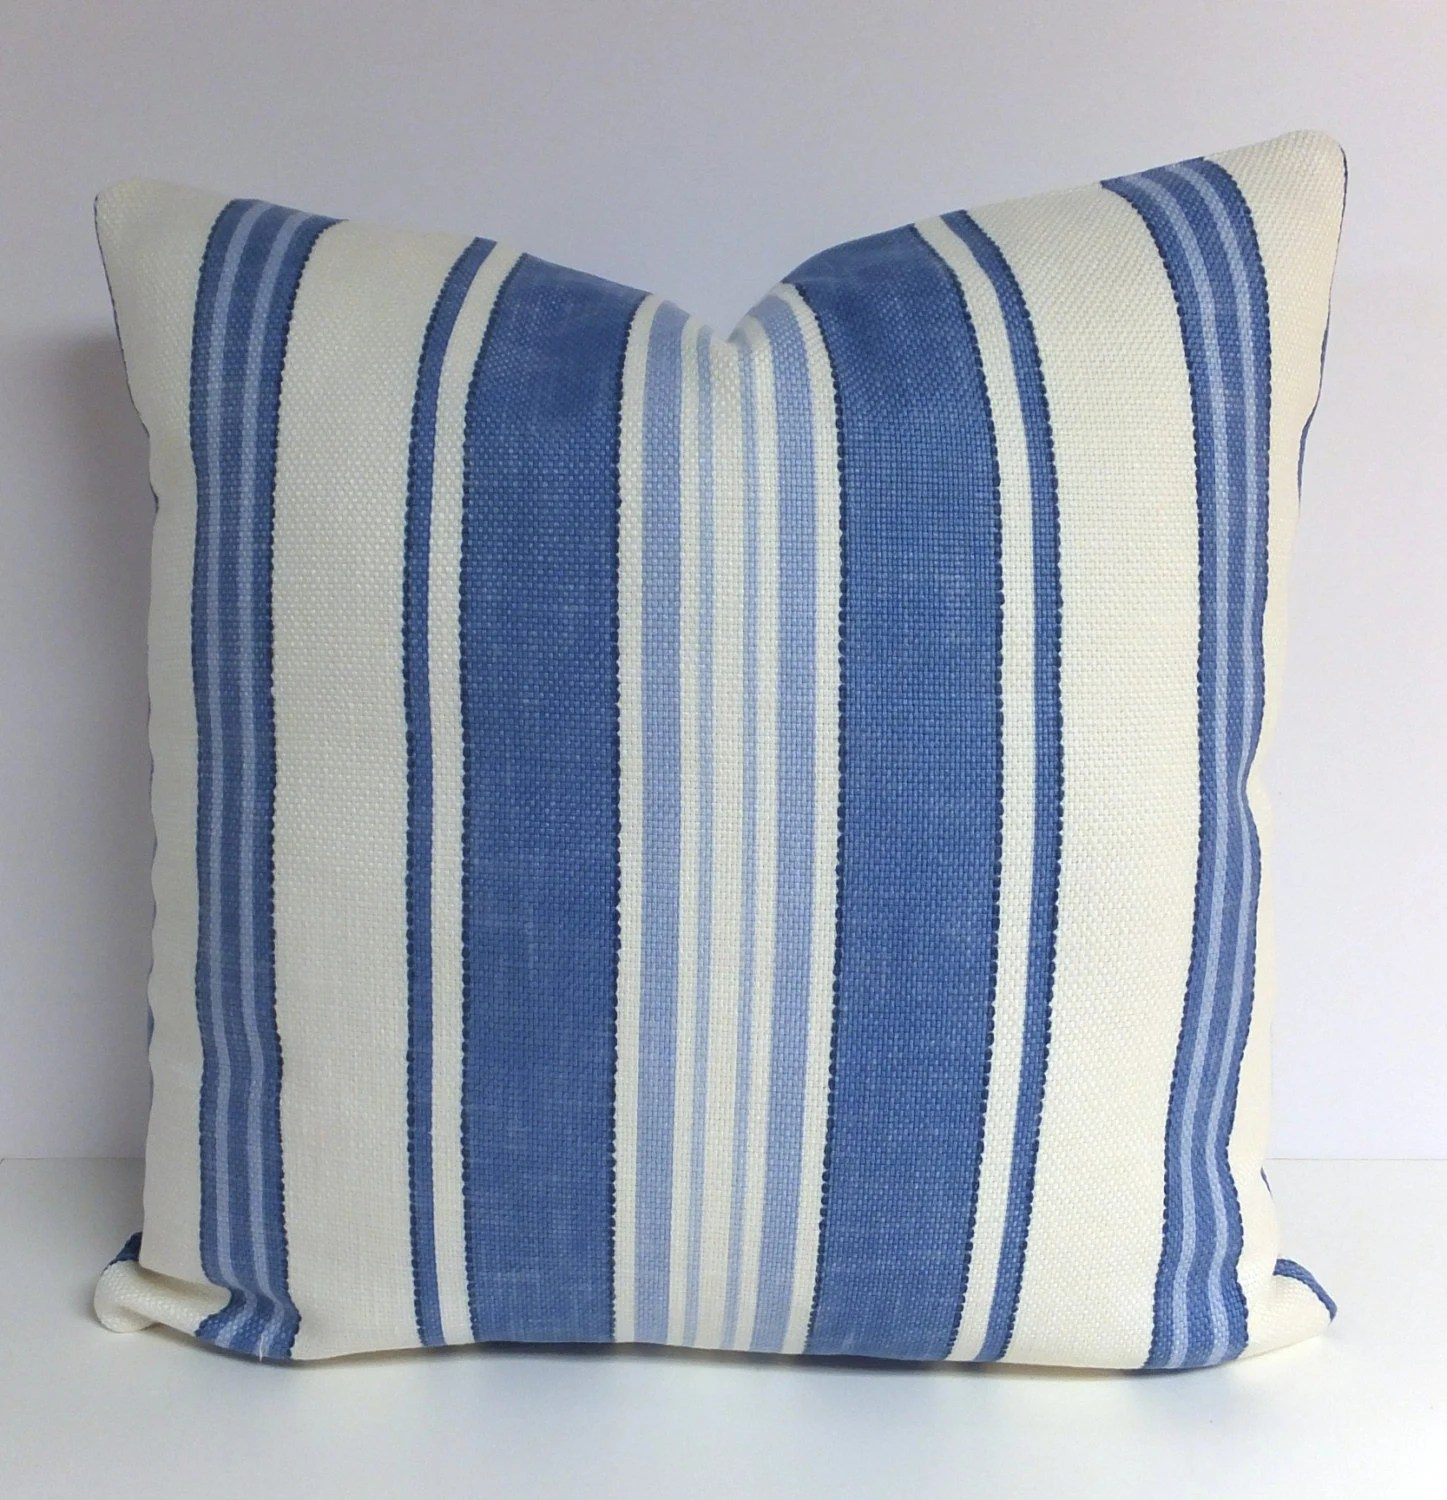 Blue Pillow  Blue and White Stripe Pillow  P by StudioAire